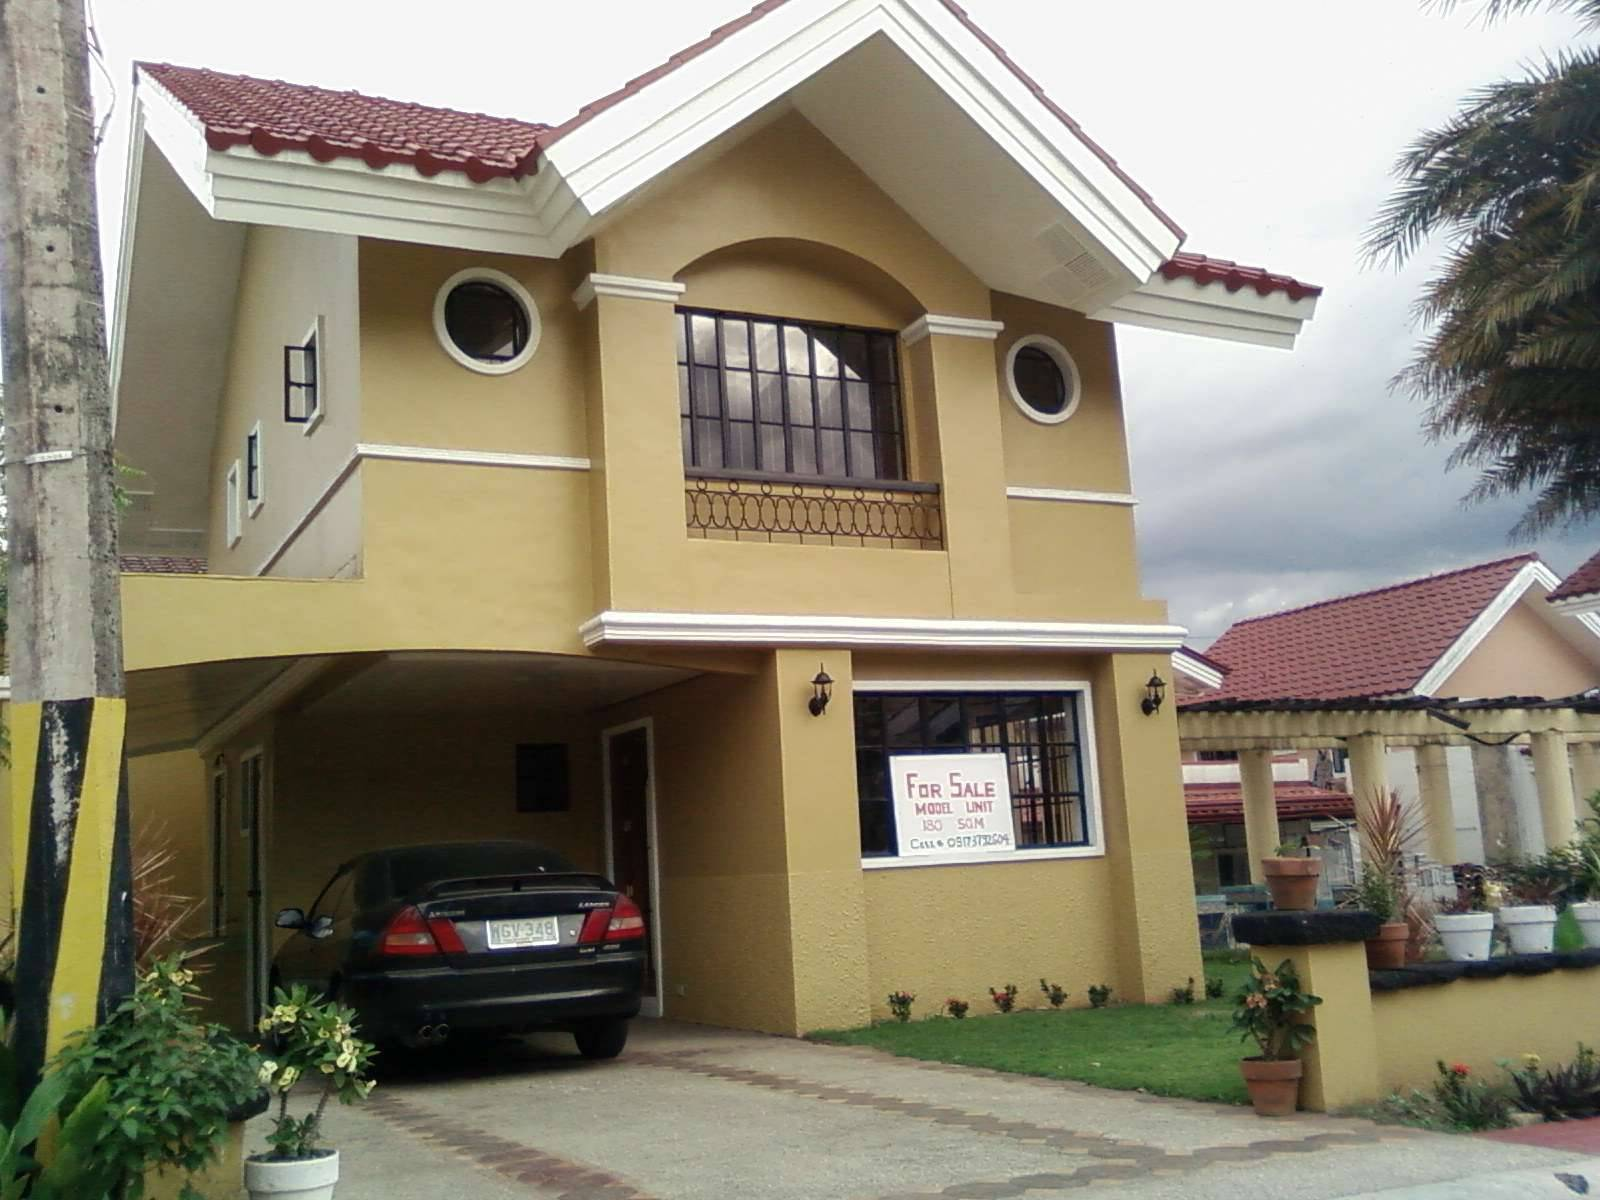 Model house for sale in philippines